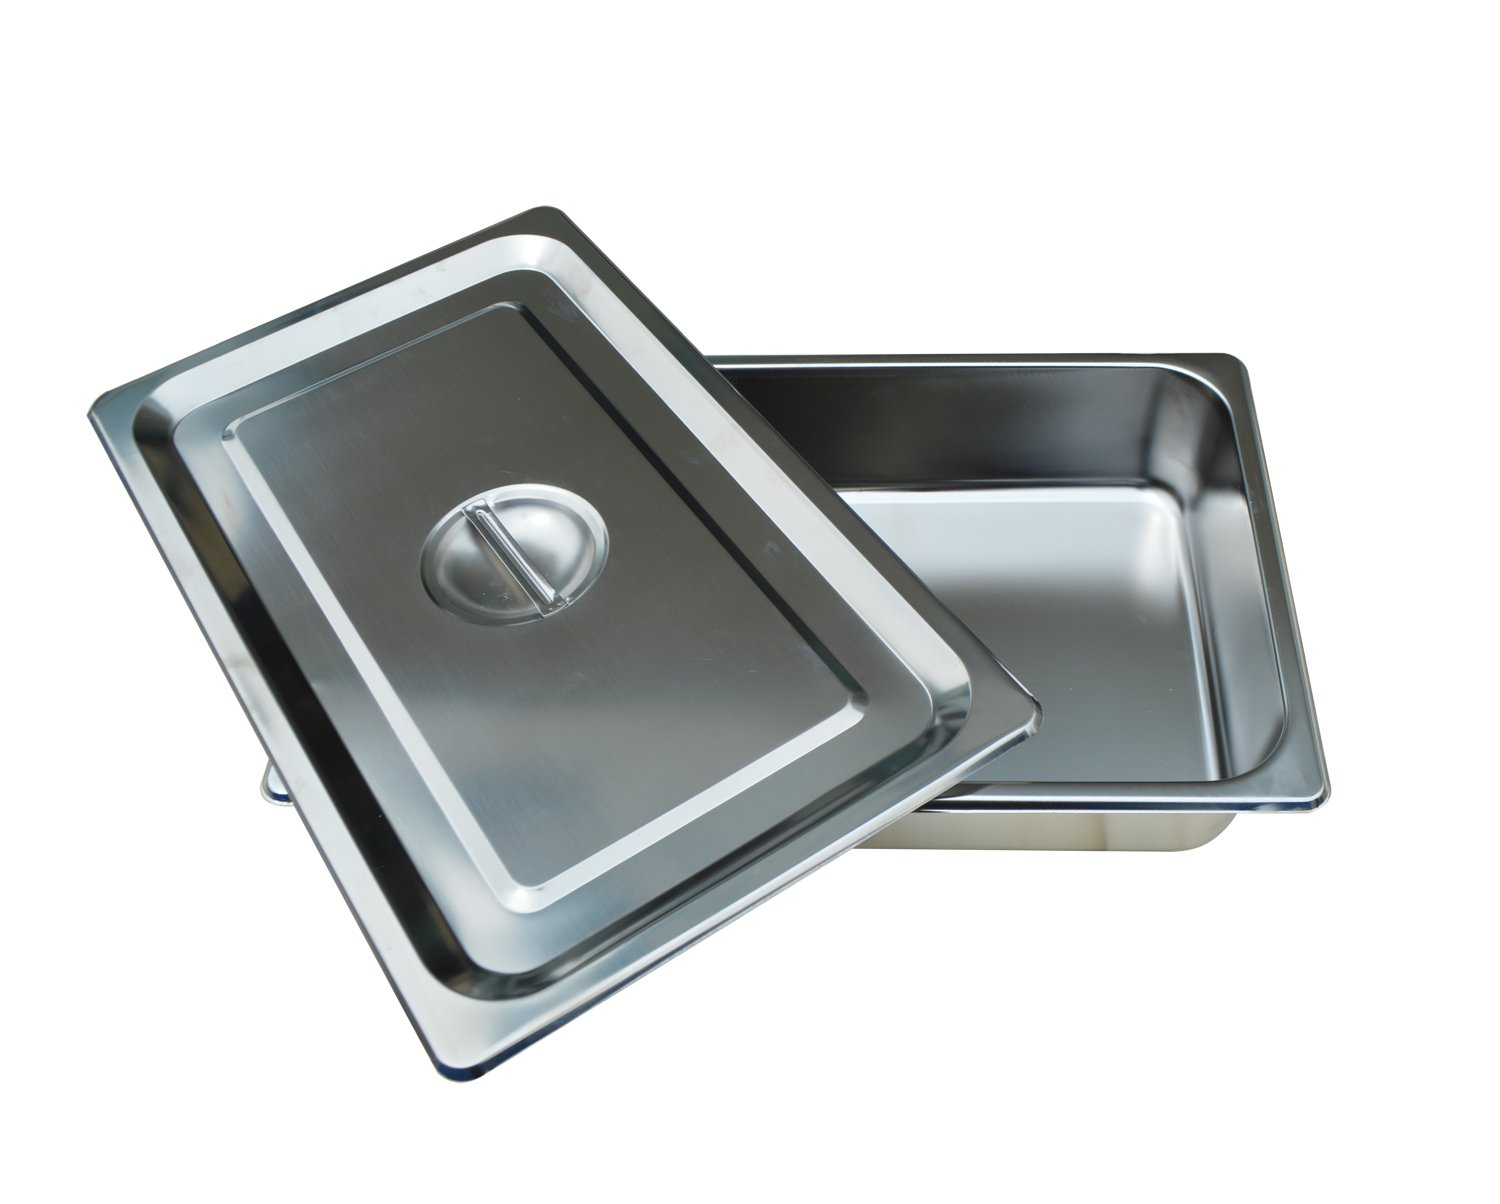 Full Size Pan Stainless Steel 4 Iinches Deep Lid included